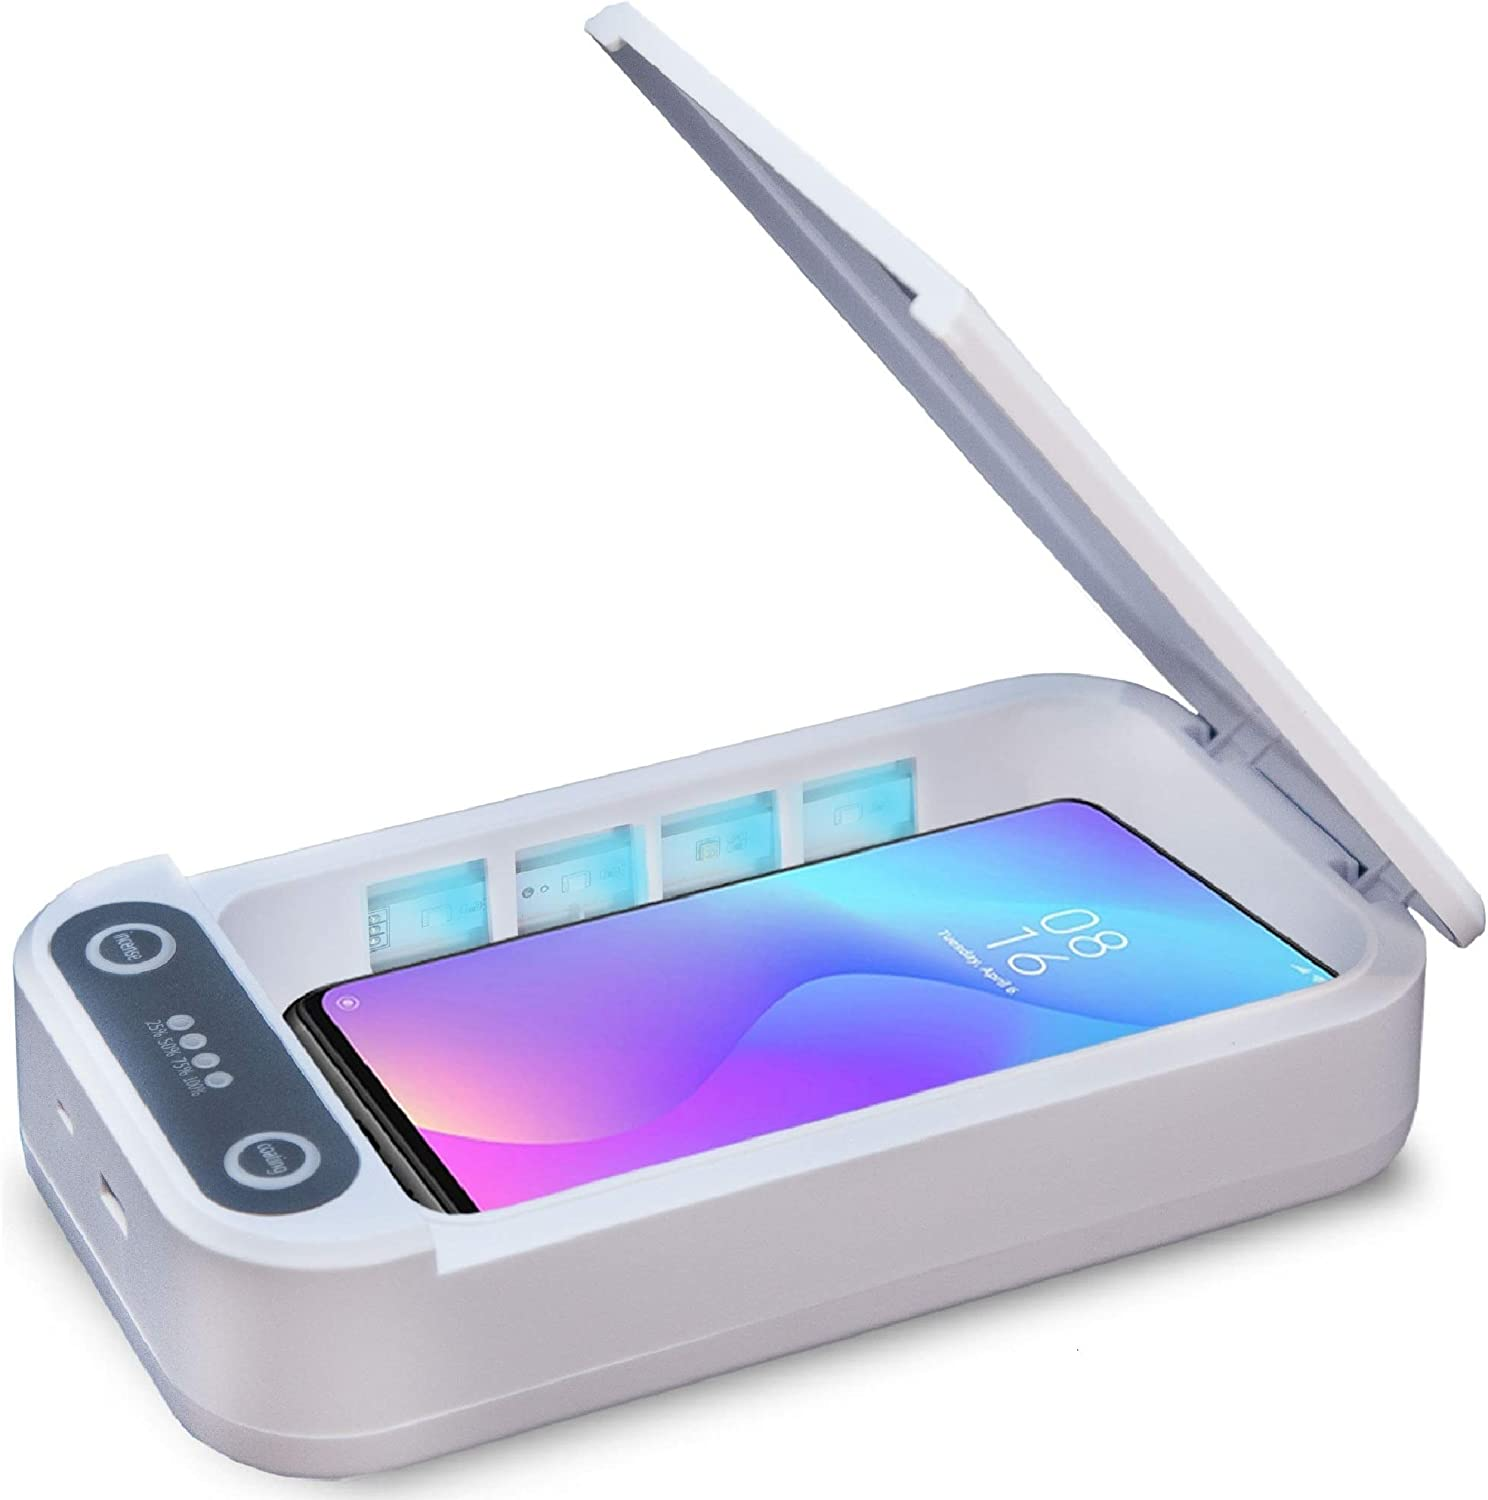 Phone Sterilizer with Wireless Charging Samrtphone Sterilizer Cleaner with Aromatherapy Function